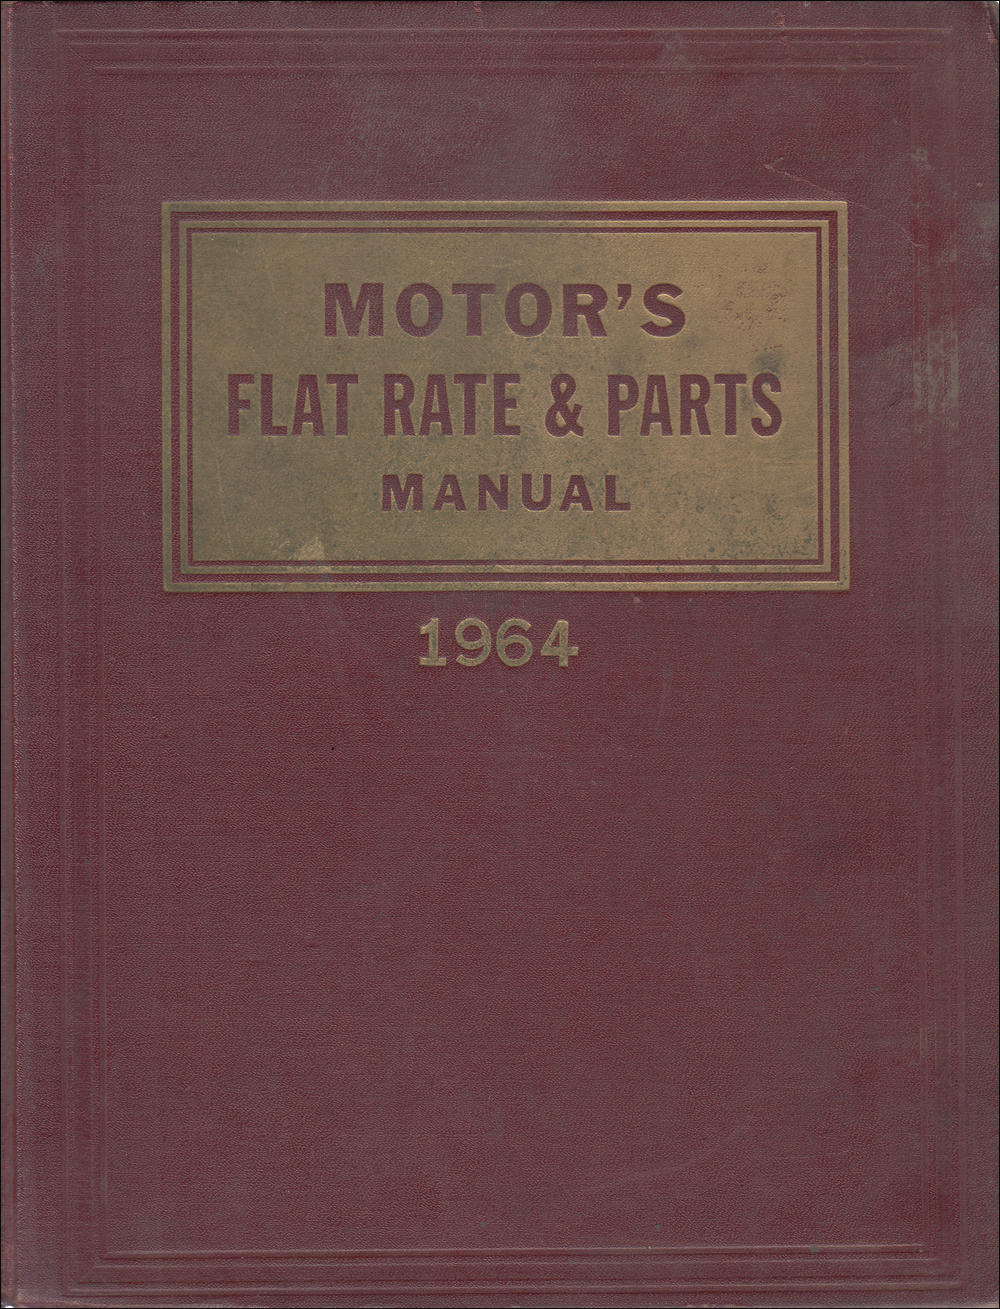 1955-1964 Motors Flat Rate Labor Guide Manual 36th Edition